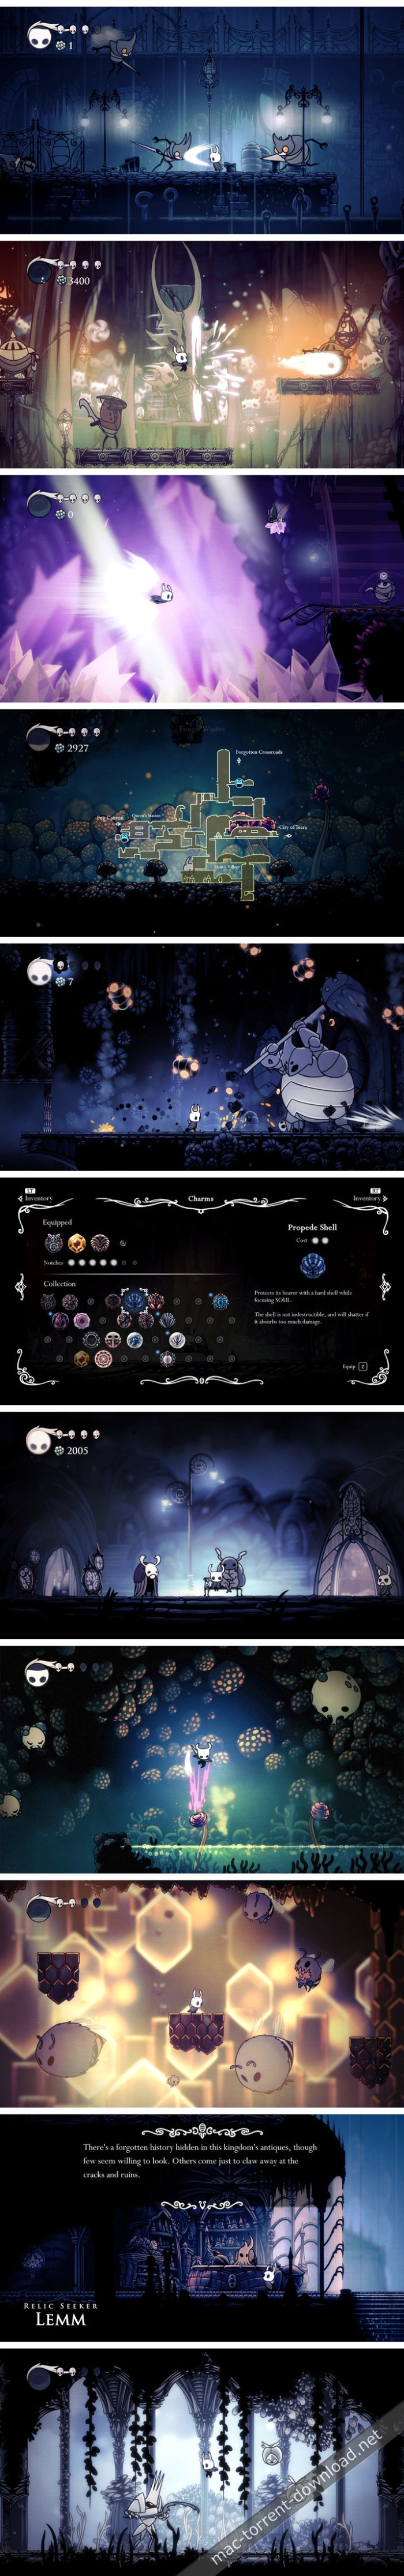 hollow_knight_1028